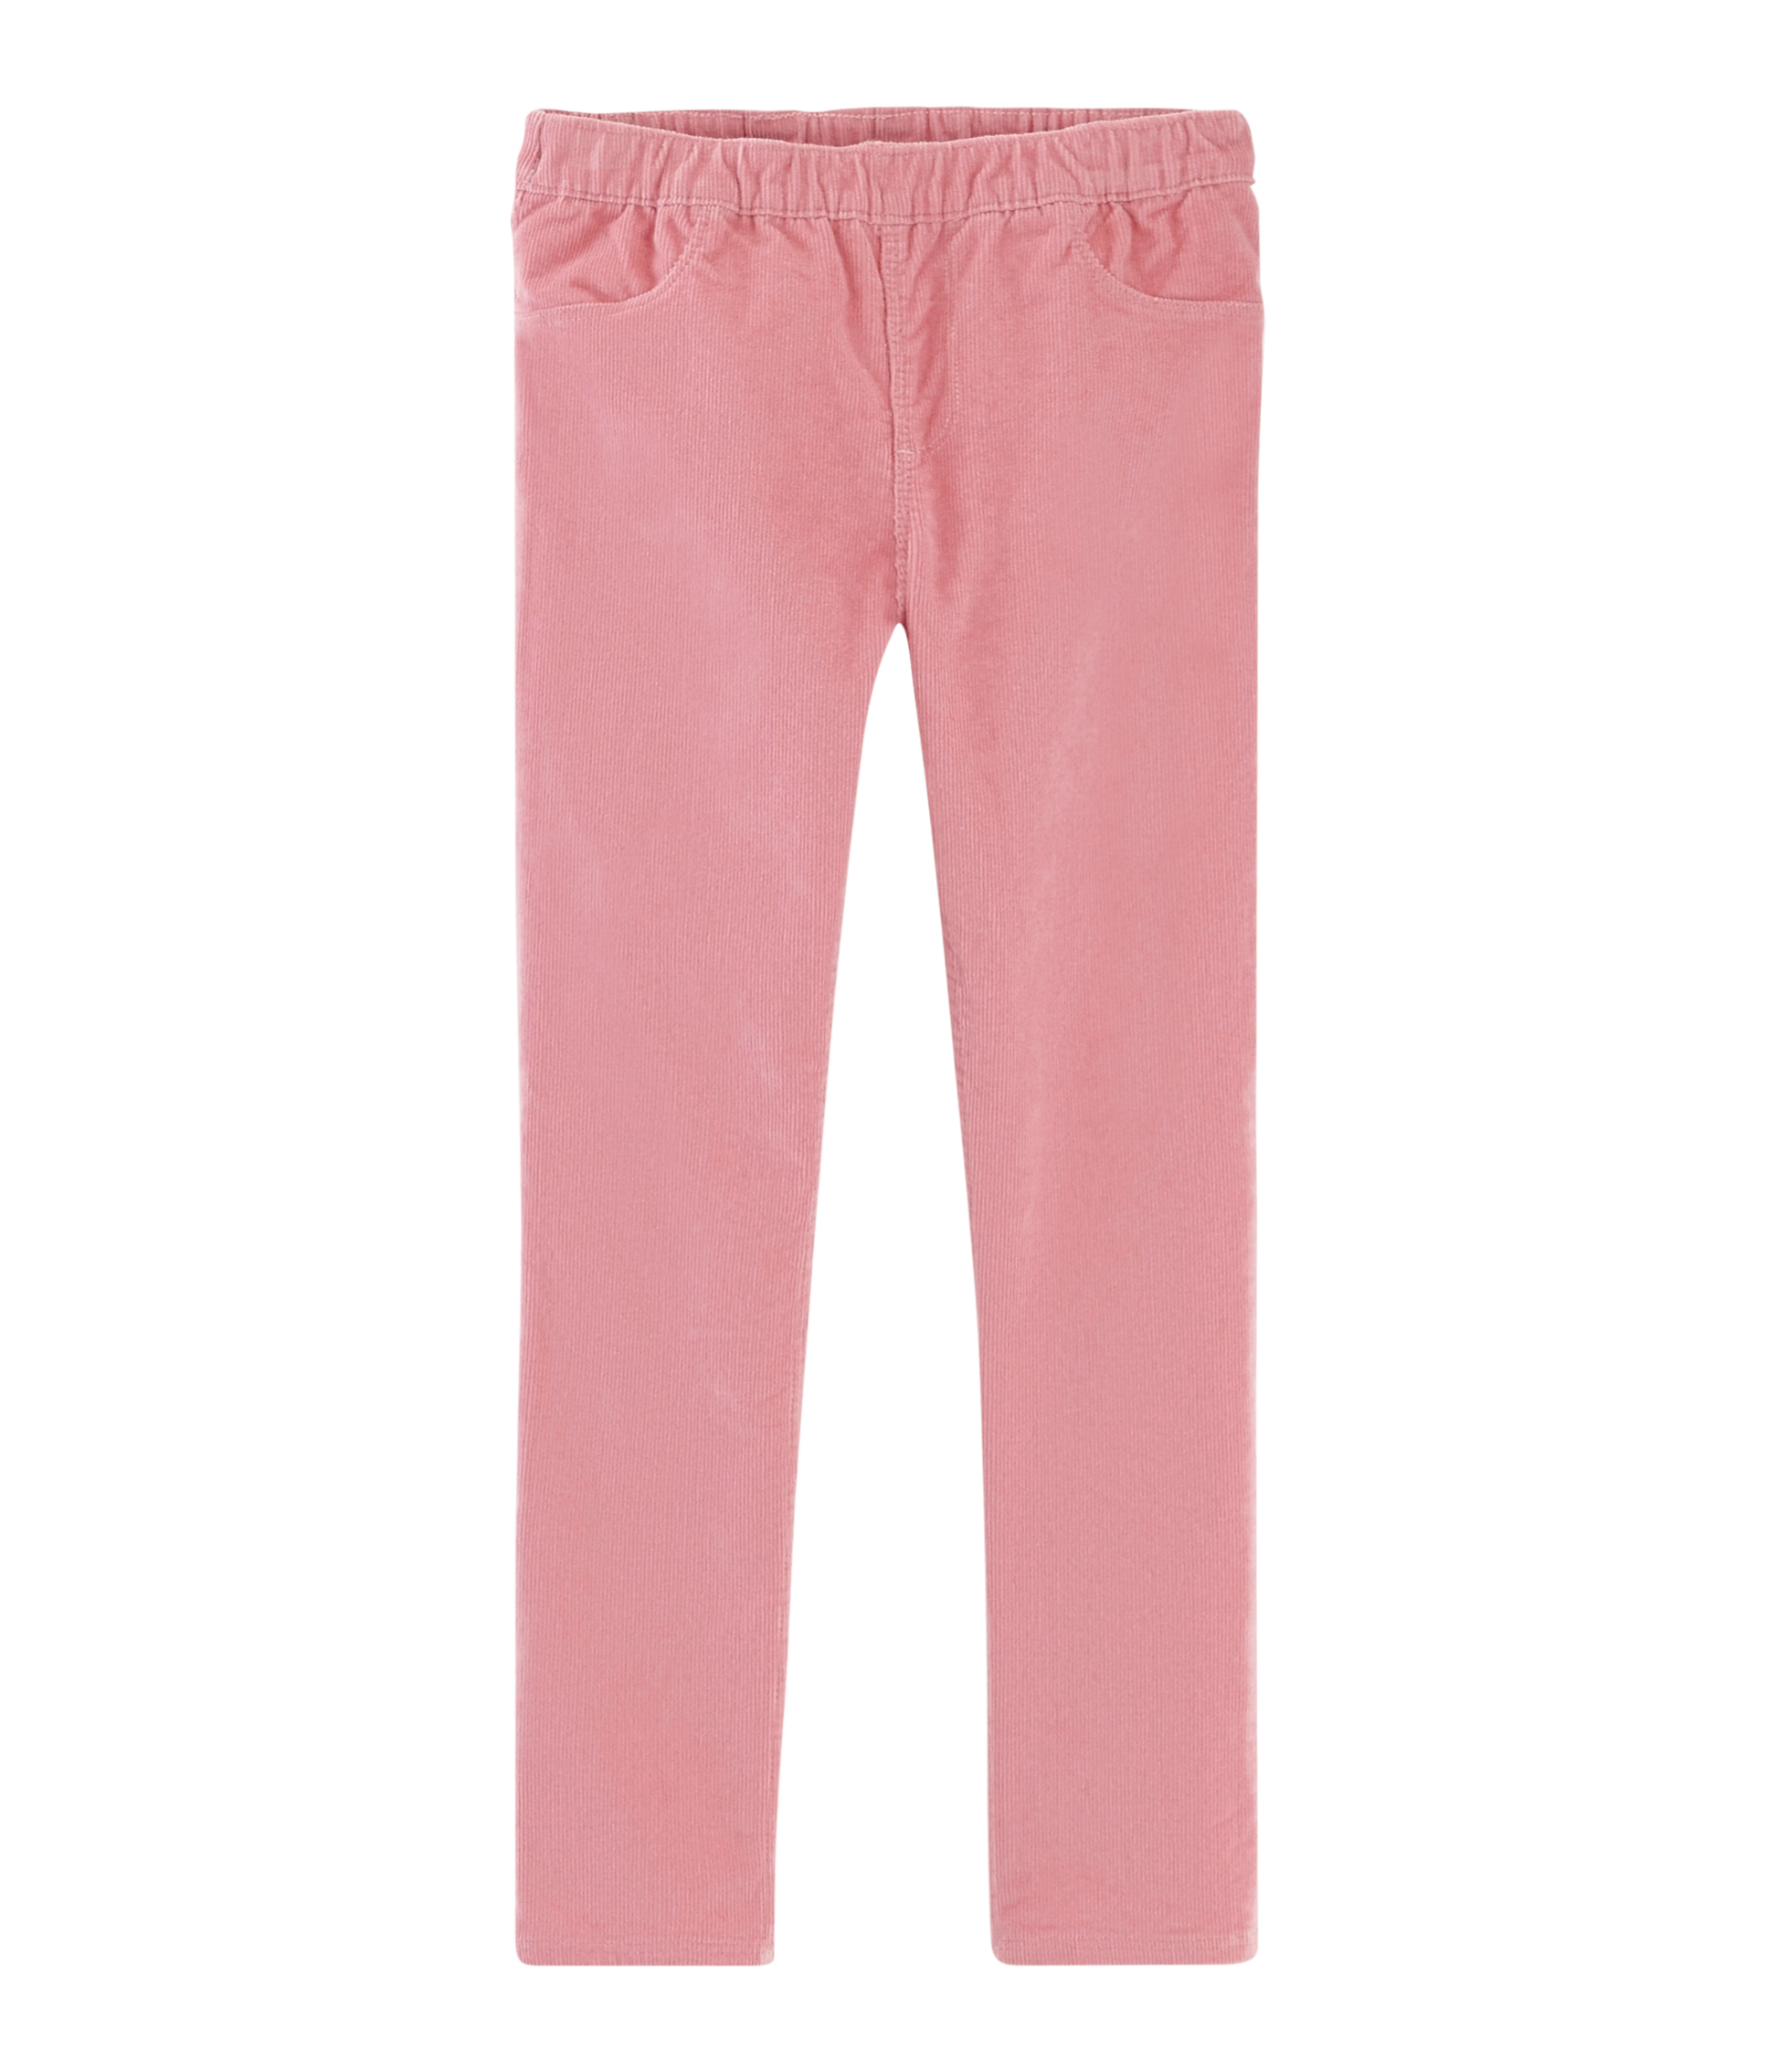 Velours slim enfant fille